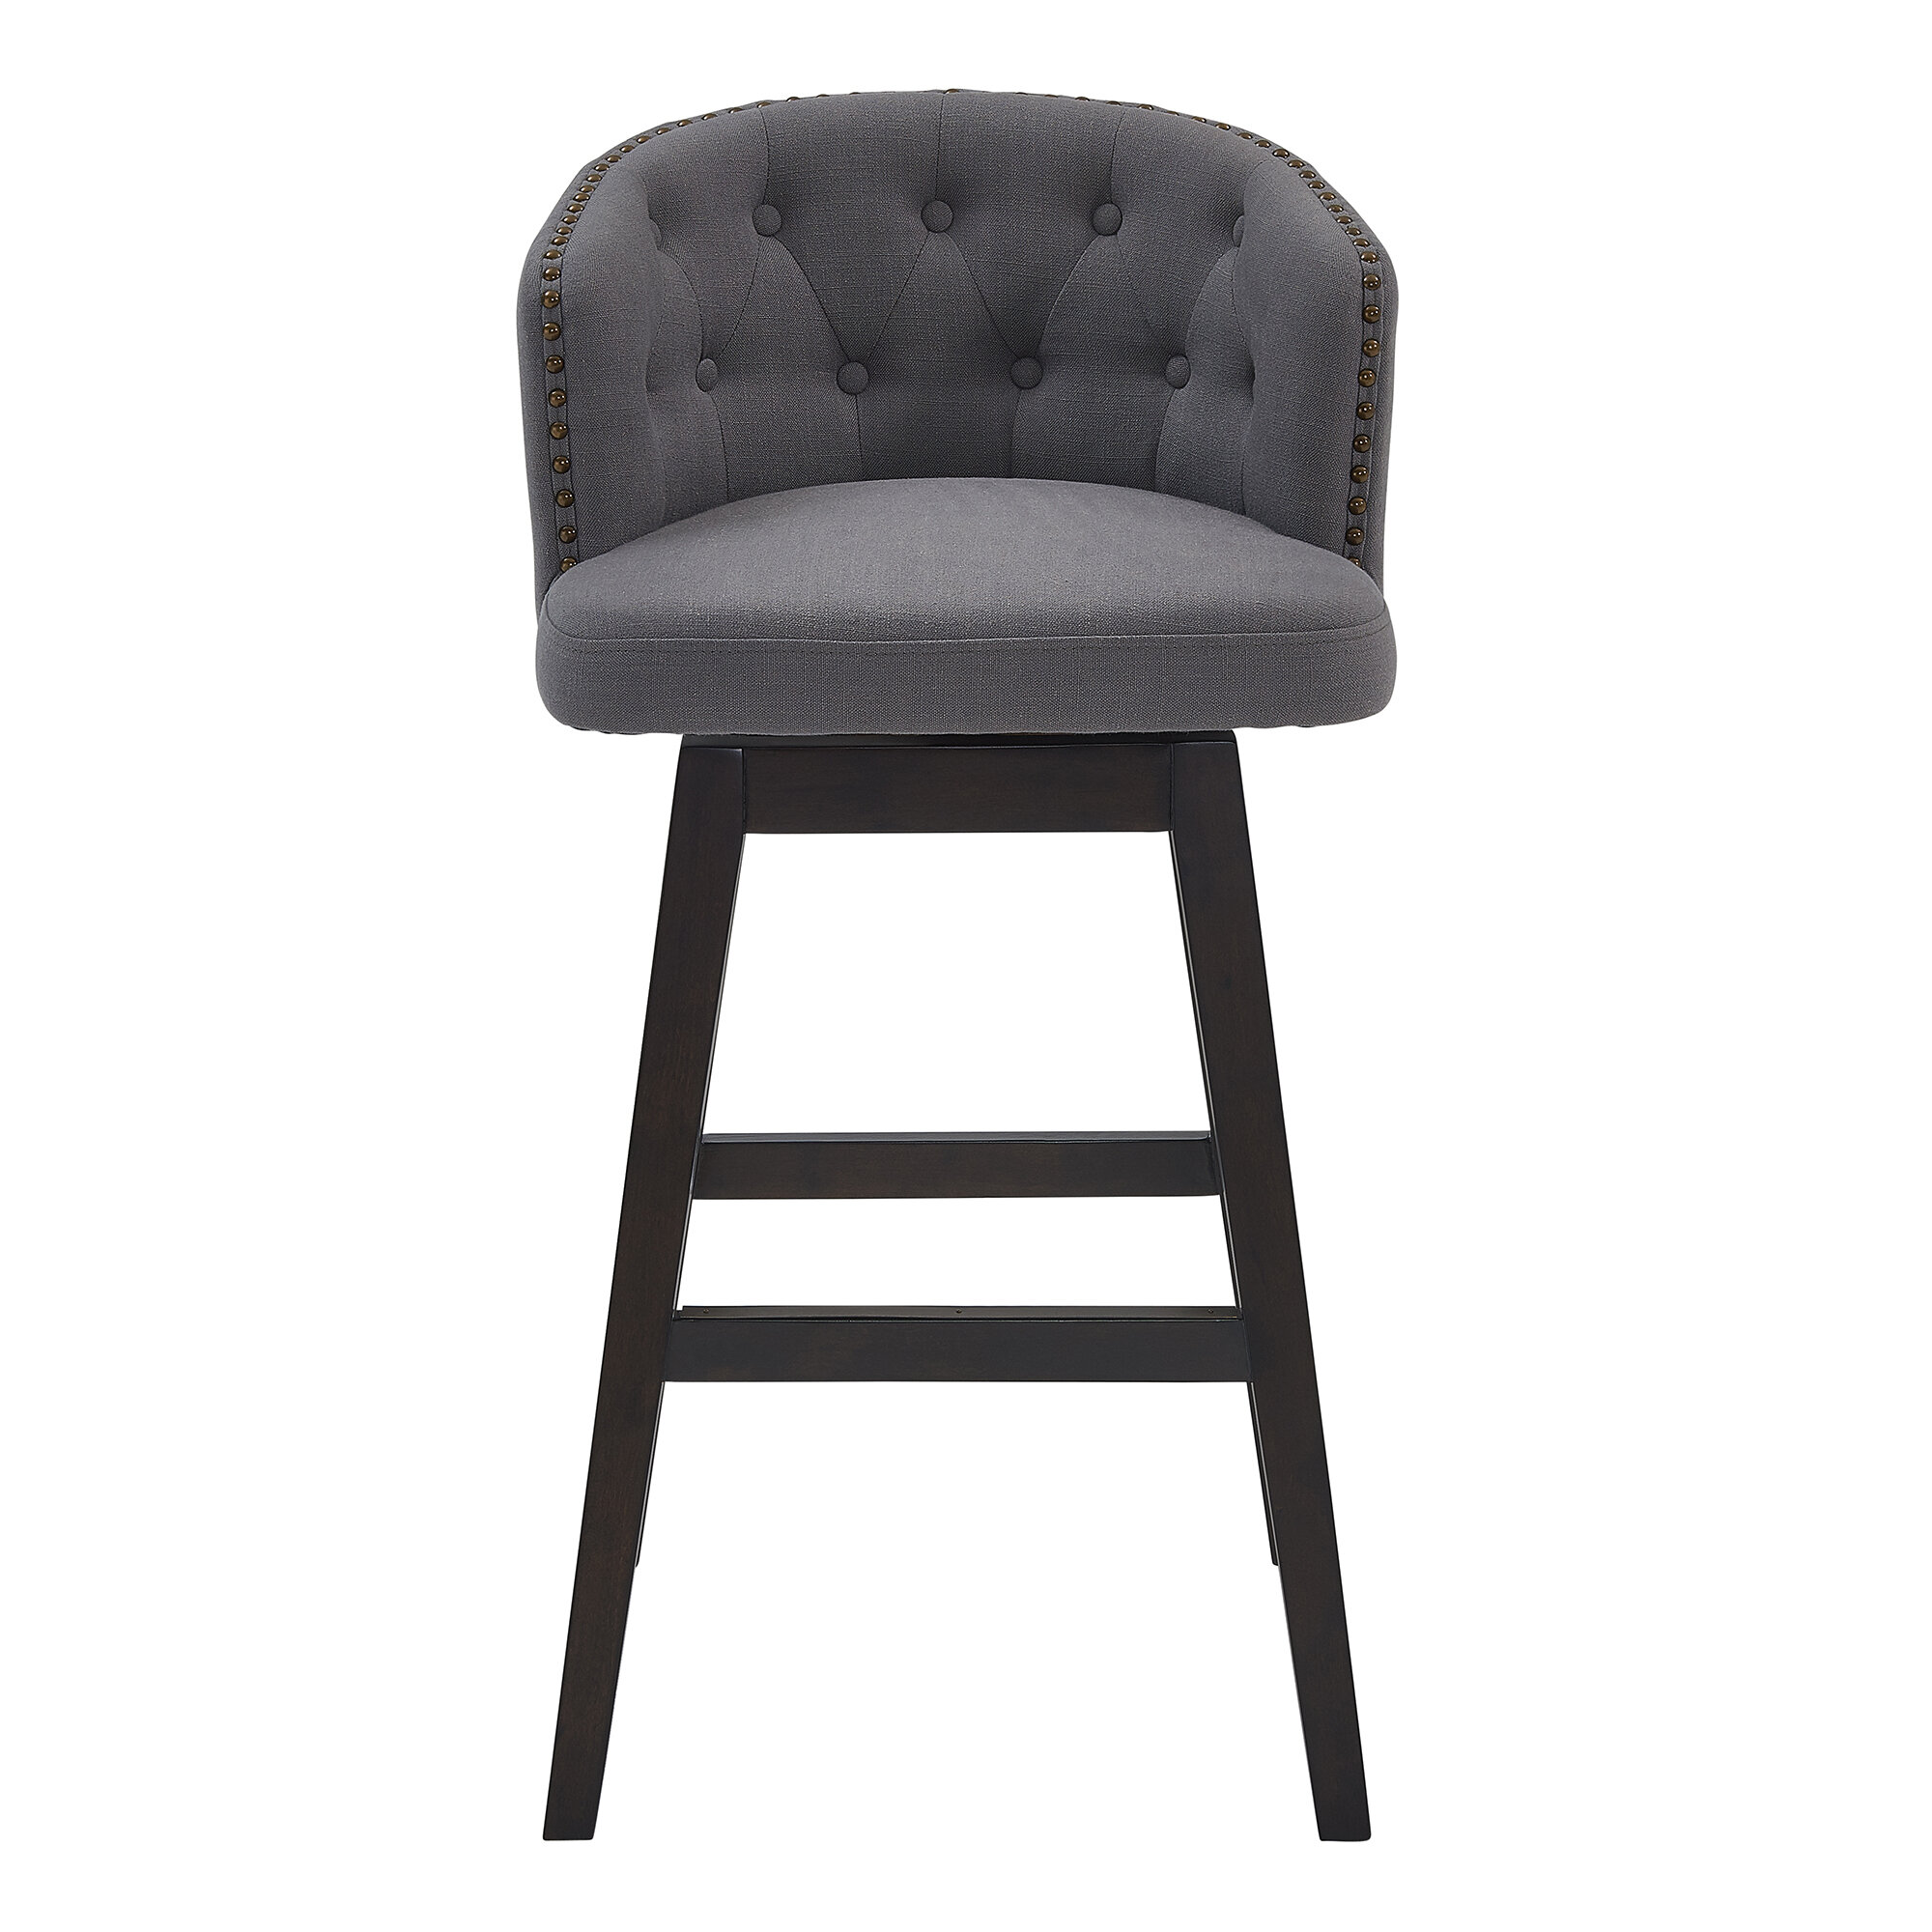 Darby Home Co Micky Bar Counter Swivel Stool Reviews Wayfair